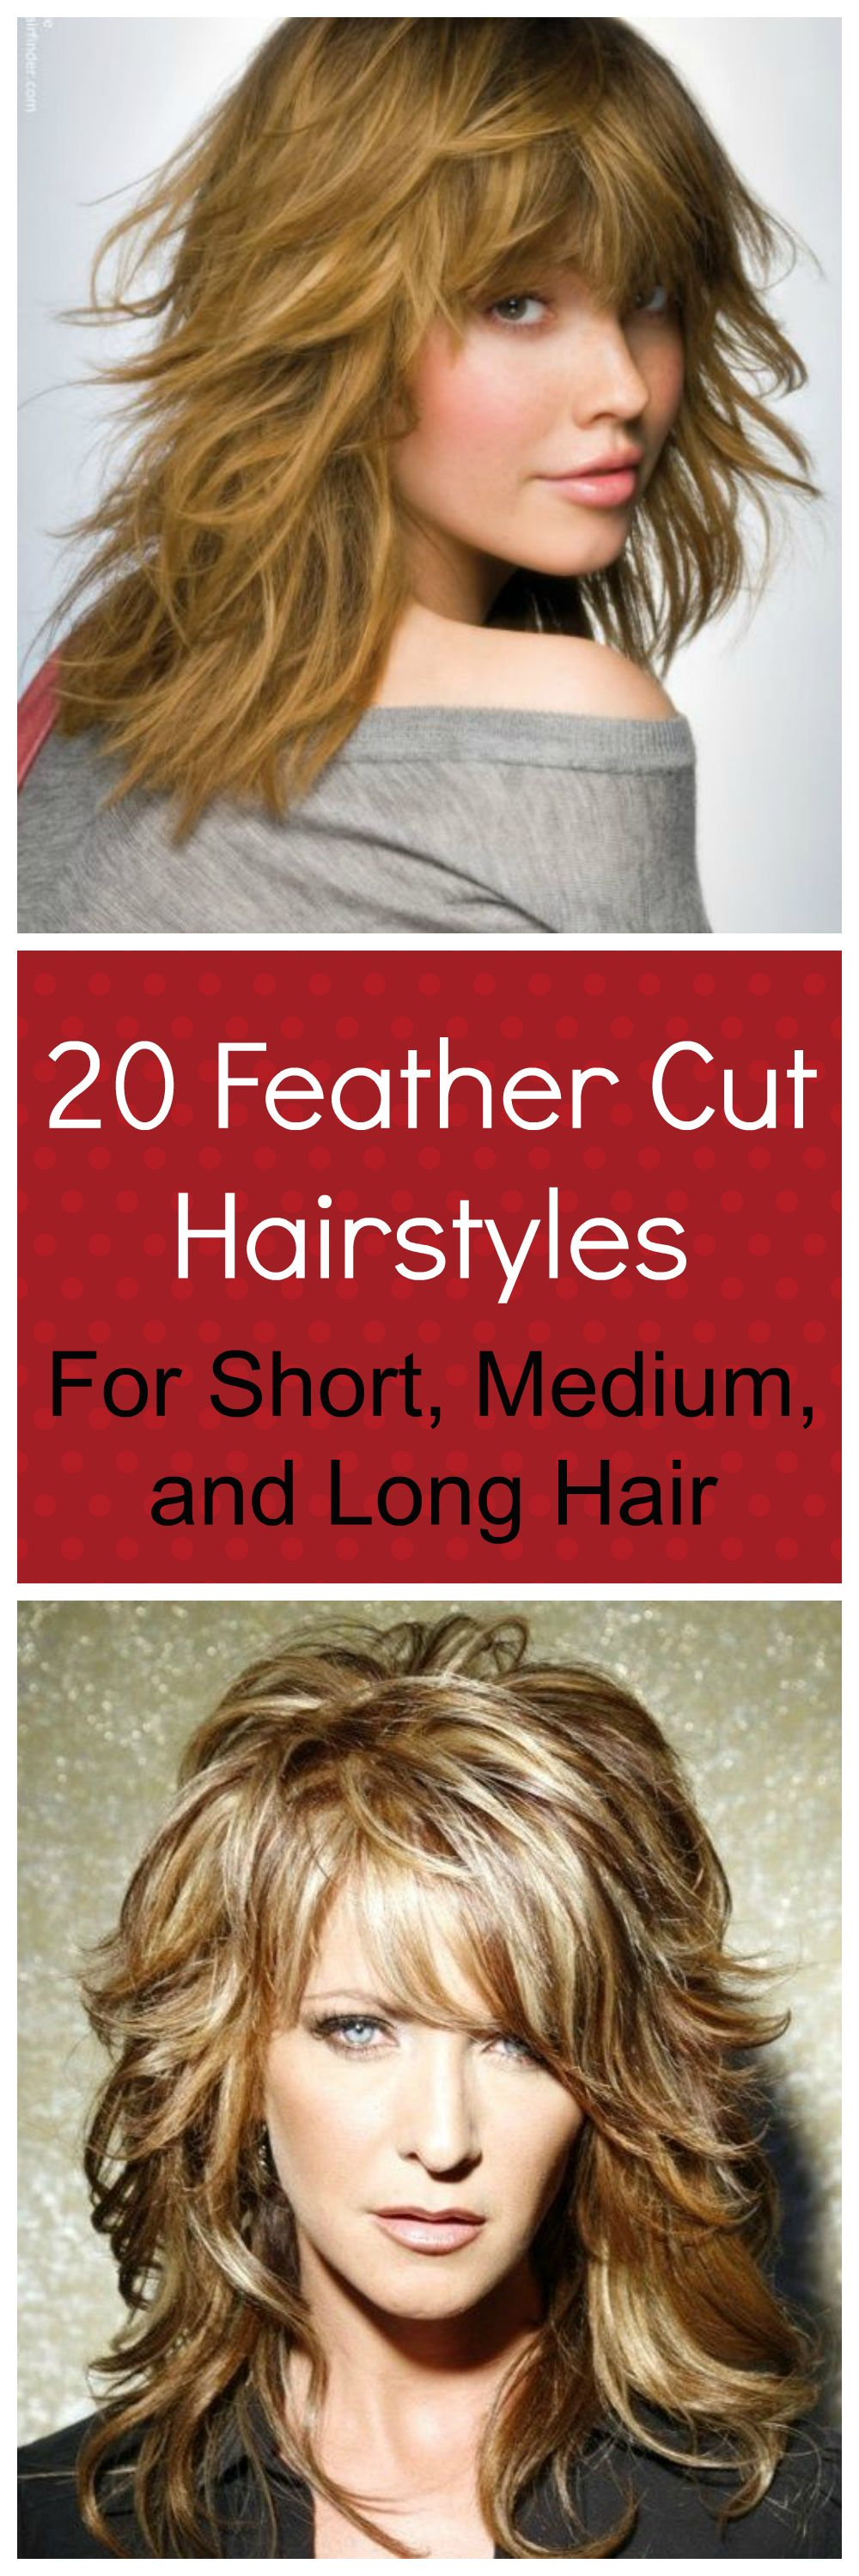 20 feather cut hairstyles for long, medium, and short hair. whatever